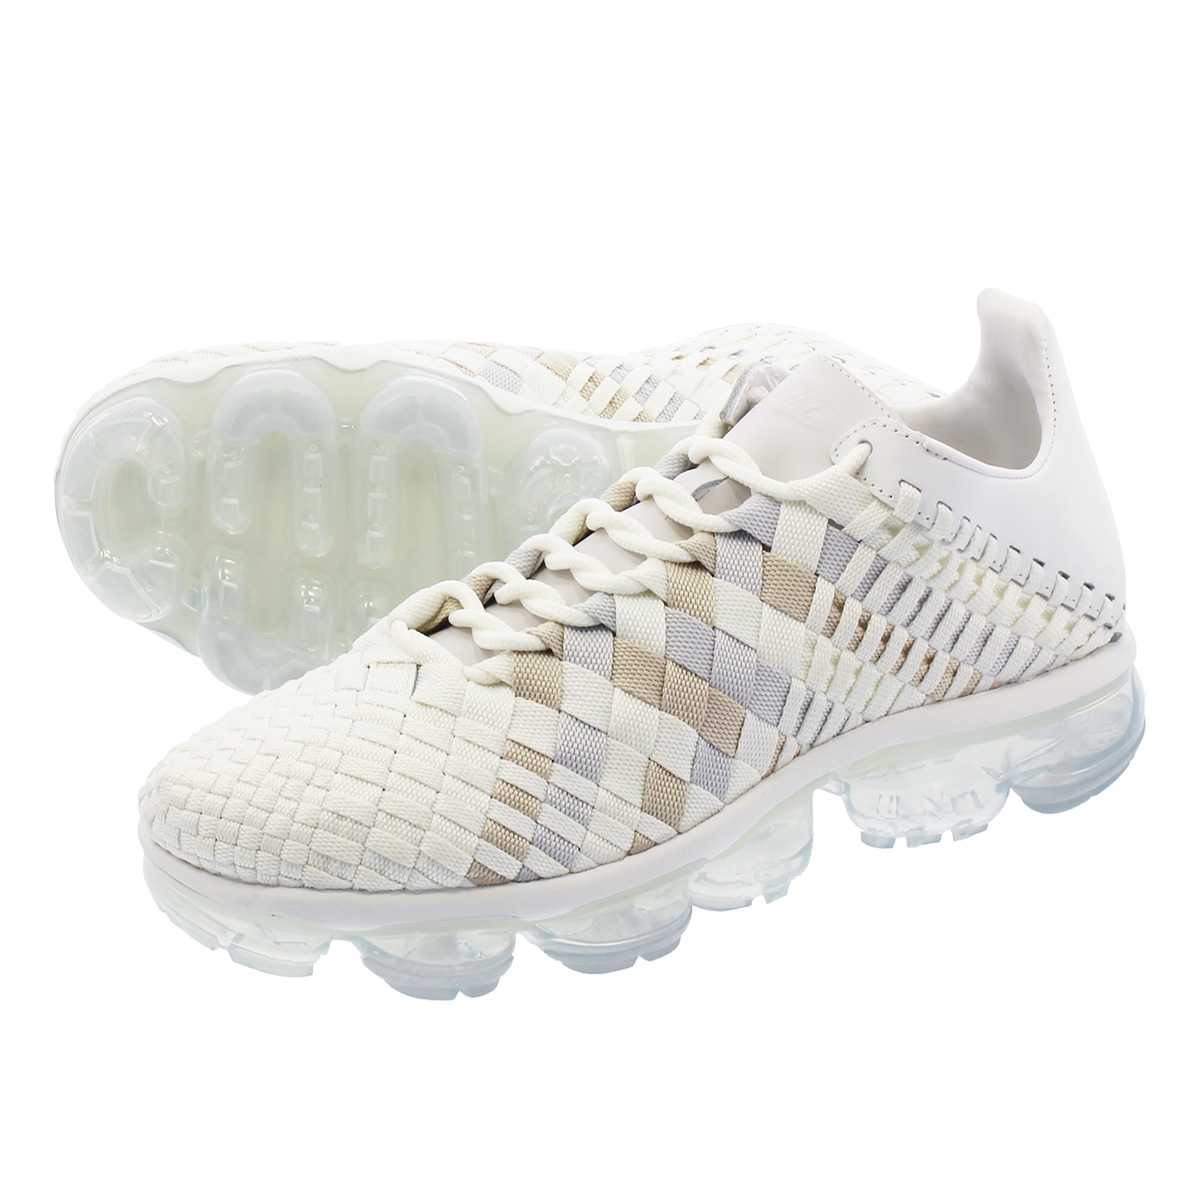 d2cce767a35 NIKE AIR VAPORMAX FLYKNIT UTILITY Nike vapor max fried food knit utility  MOON PARTICLE PERSIAN VIOLET